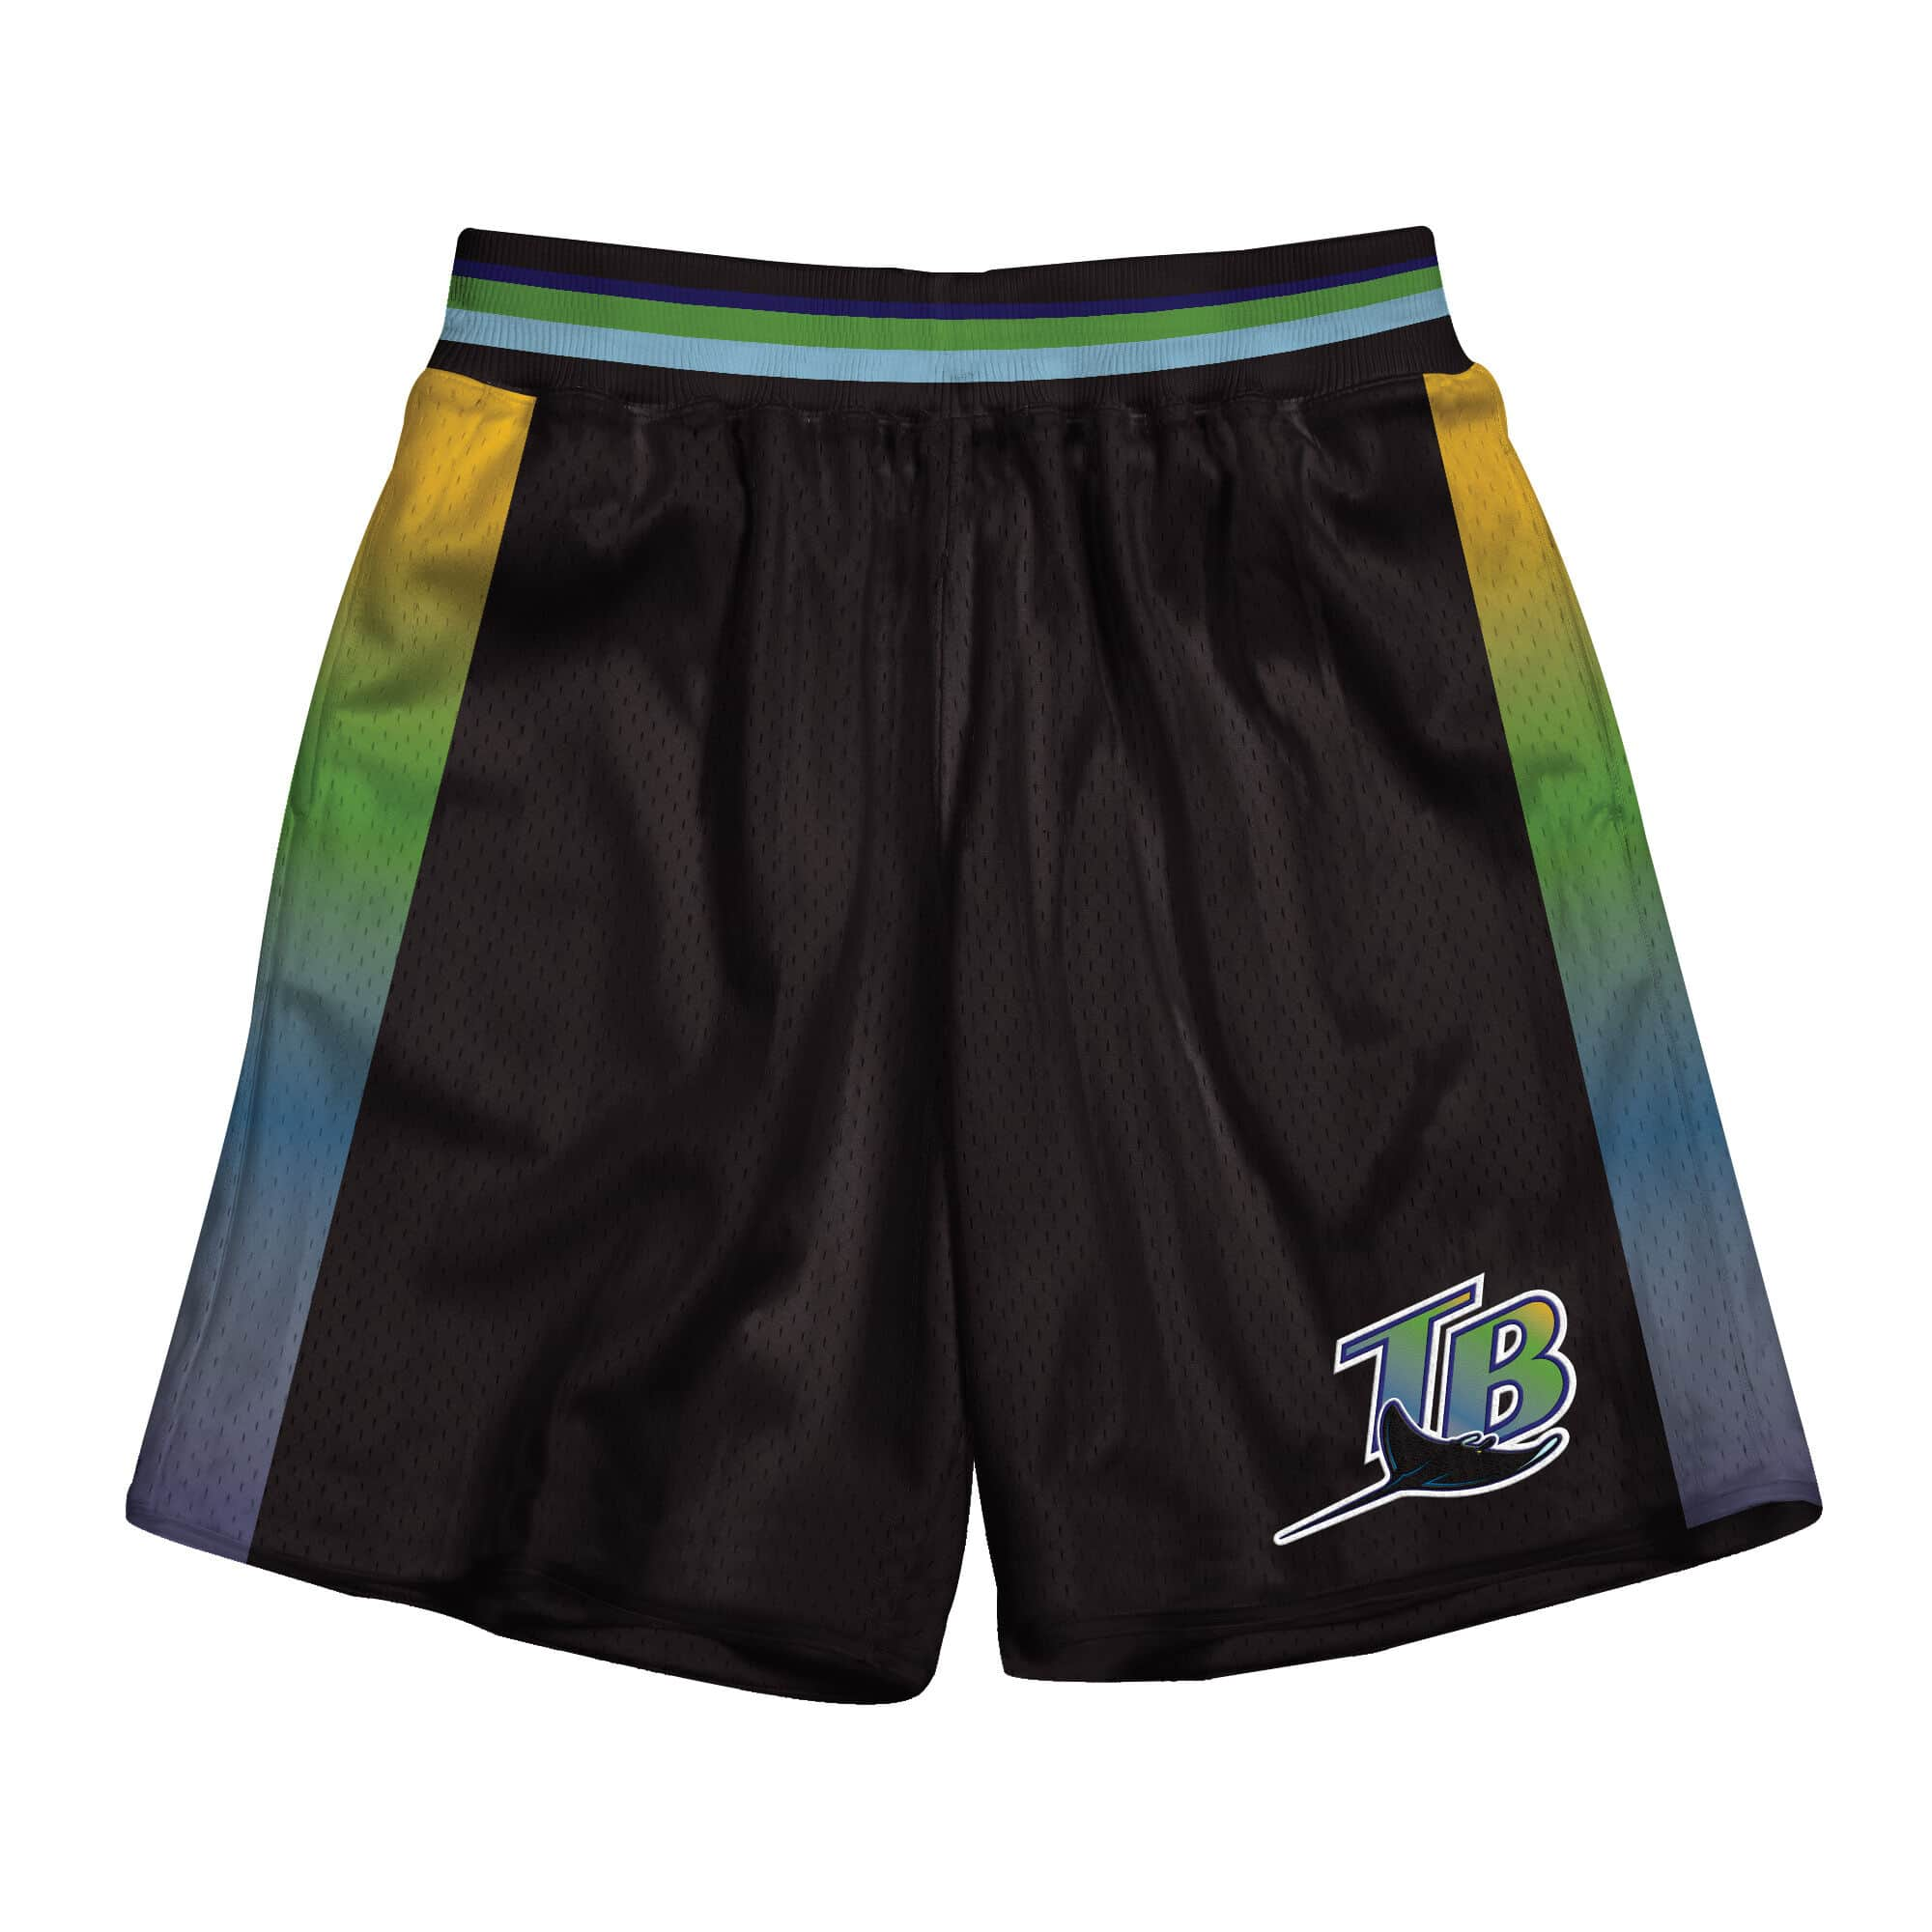 Returning Champions Shorts Tampa Bay Devil Rays